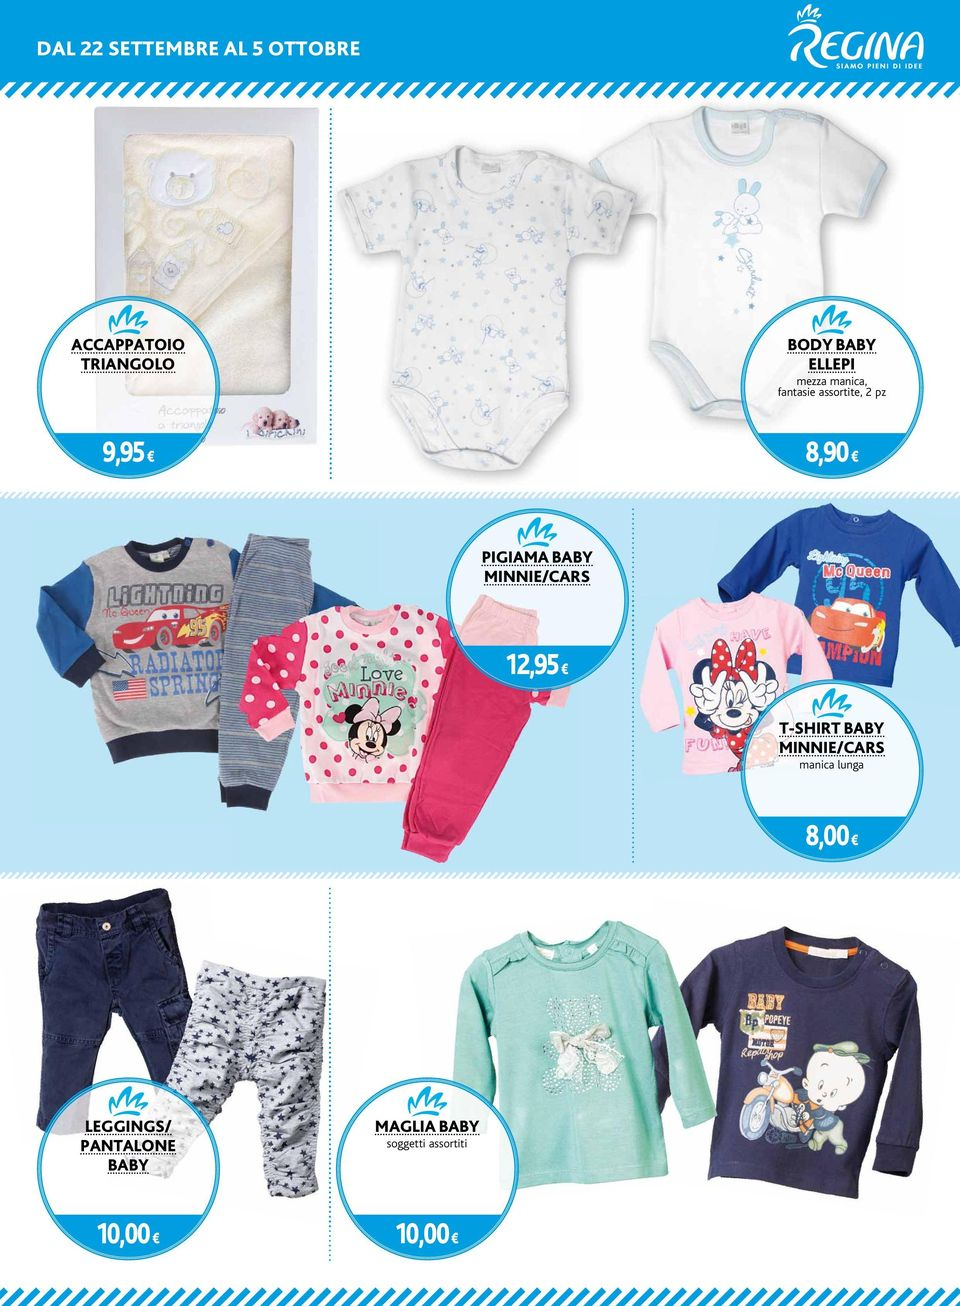 BABY MINNIE/CARS 12,95 T-SHIRT BABY MINNIE/CARS manica lunga